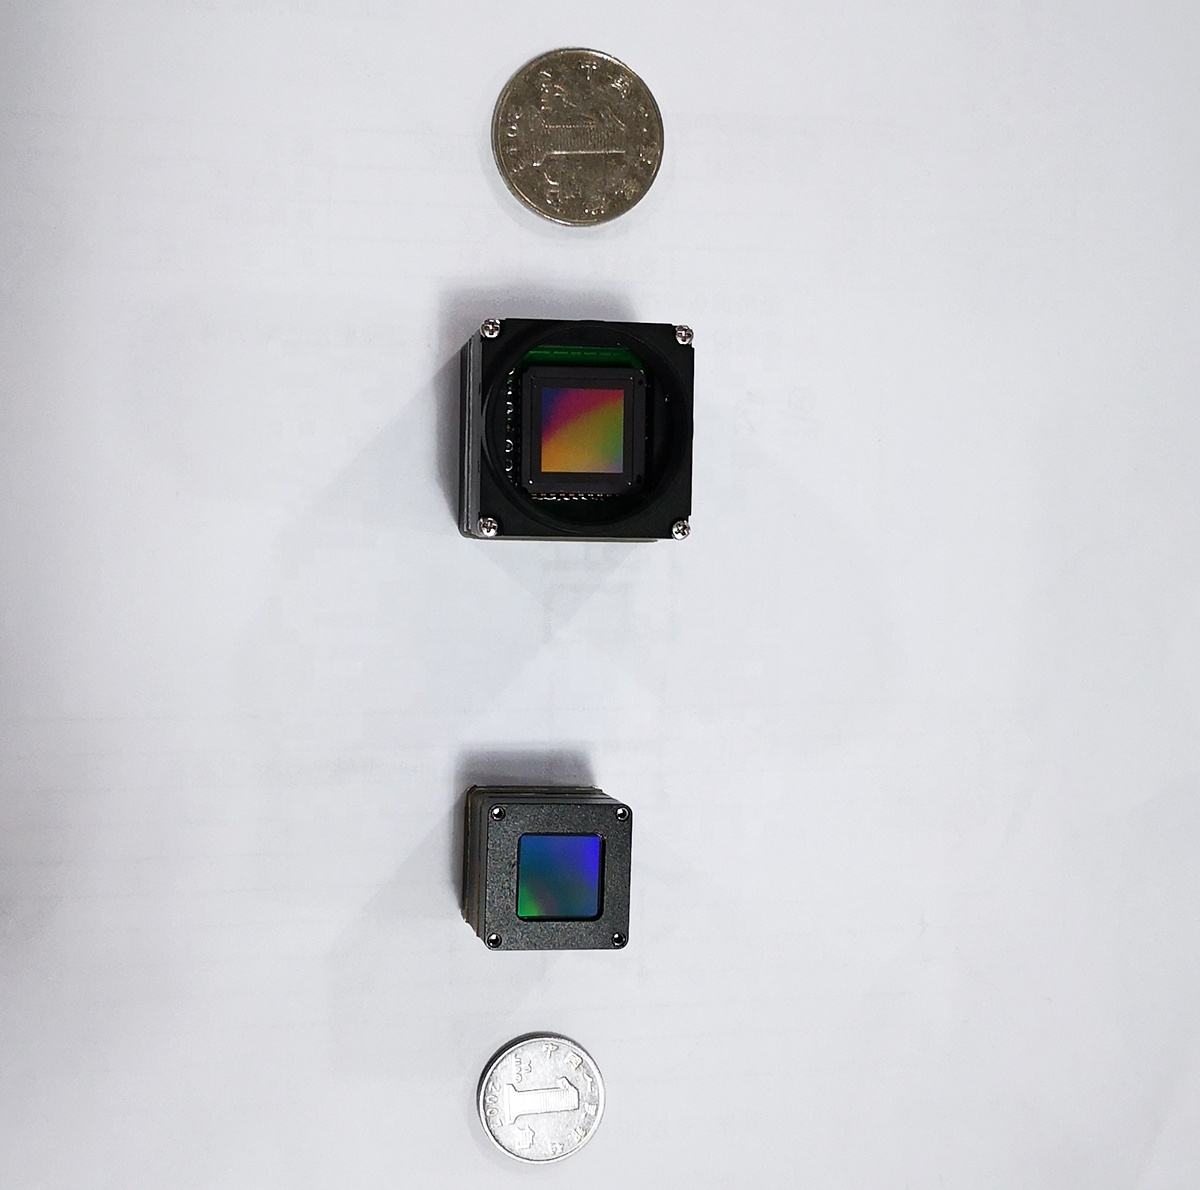 MINI shutterless long-wave UnCooled Thermal Imaging camera Cores for surveillance